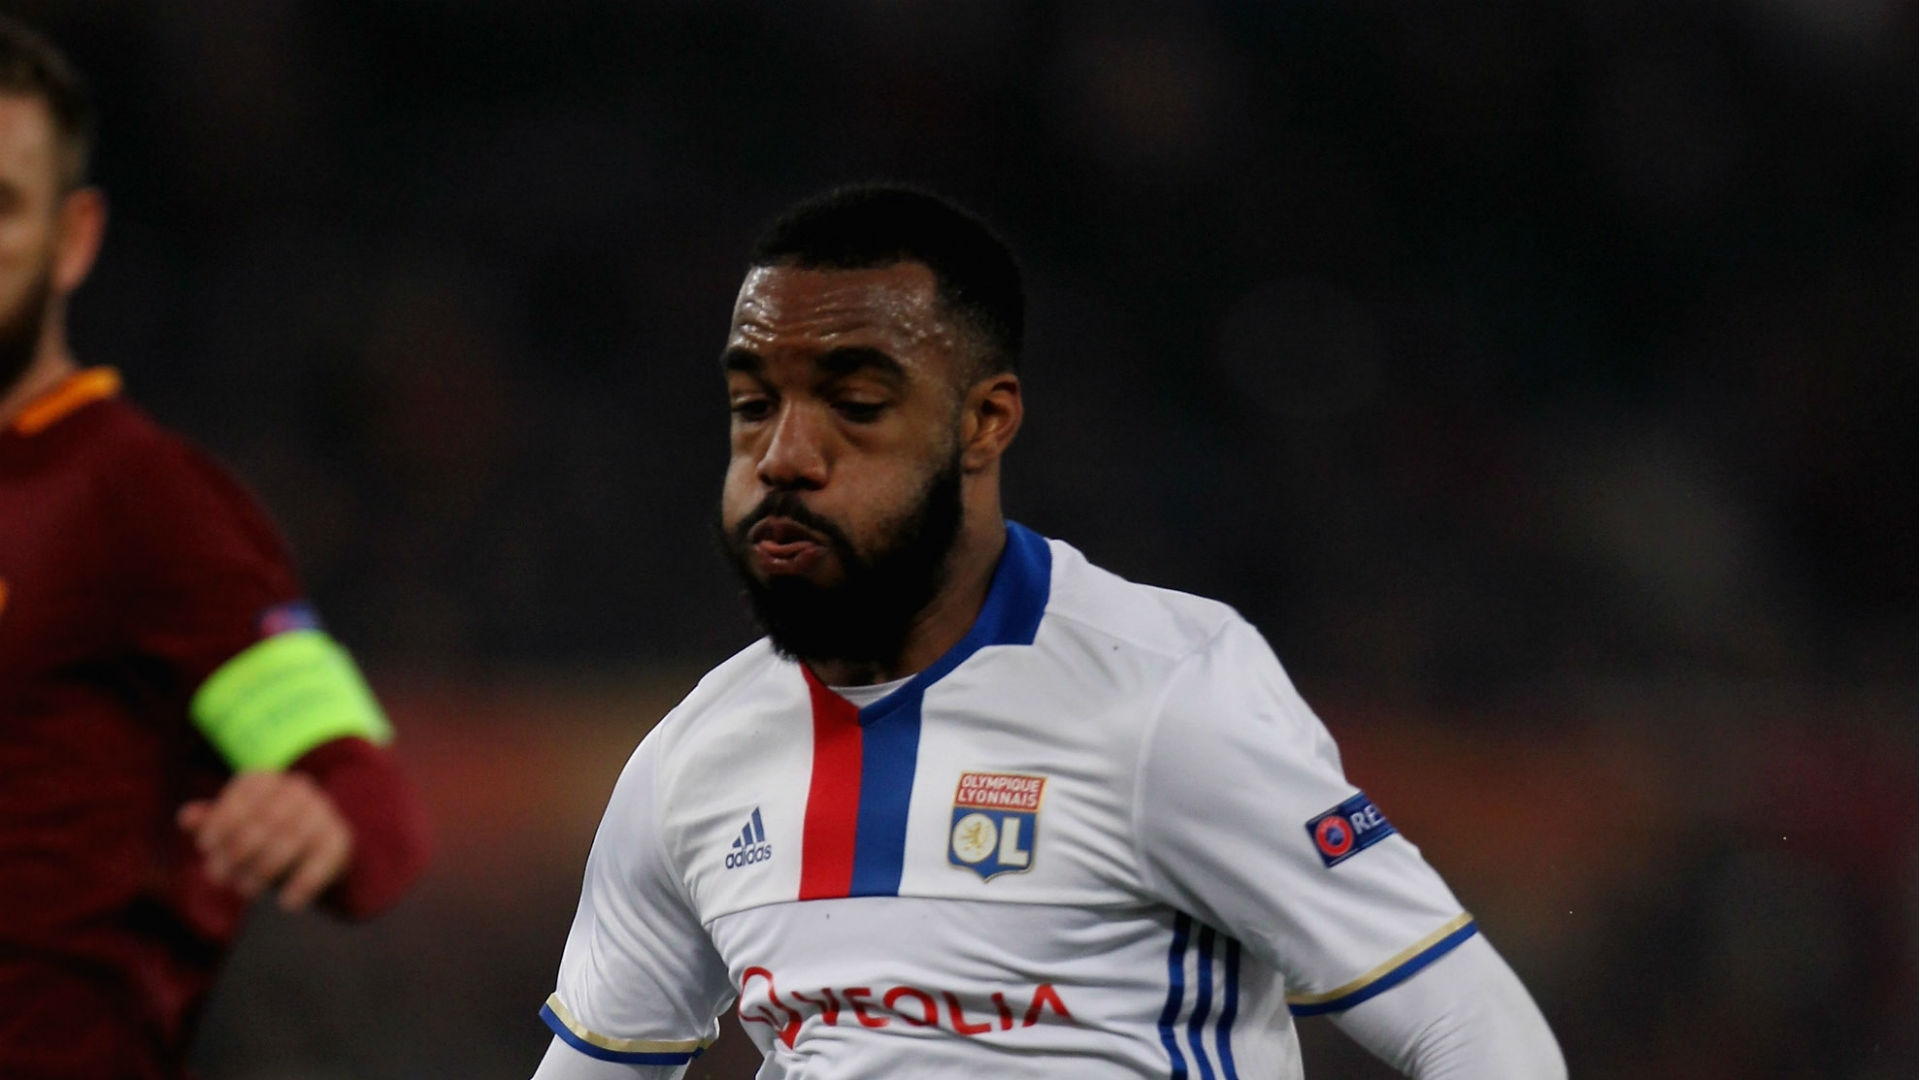 If Lacazette is to leave Lyon before the start of the new season, the French side will be ready to fill the vacancy.